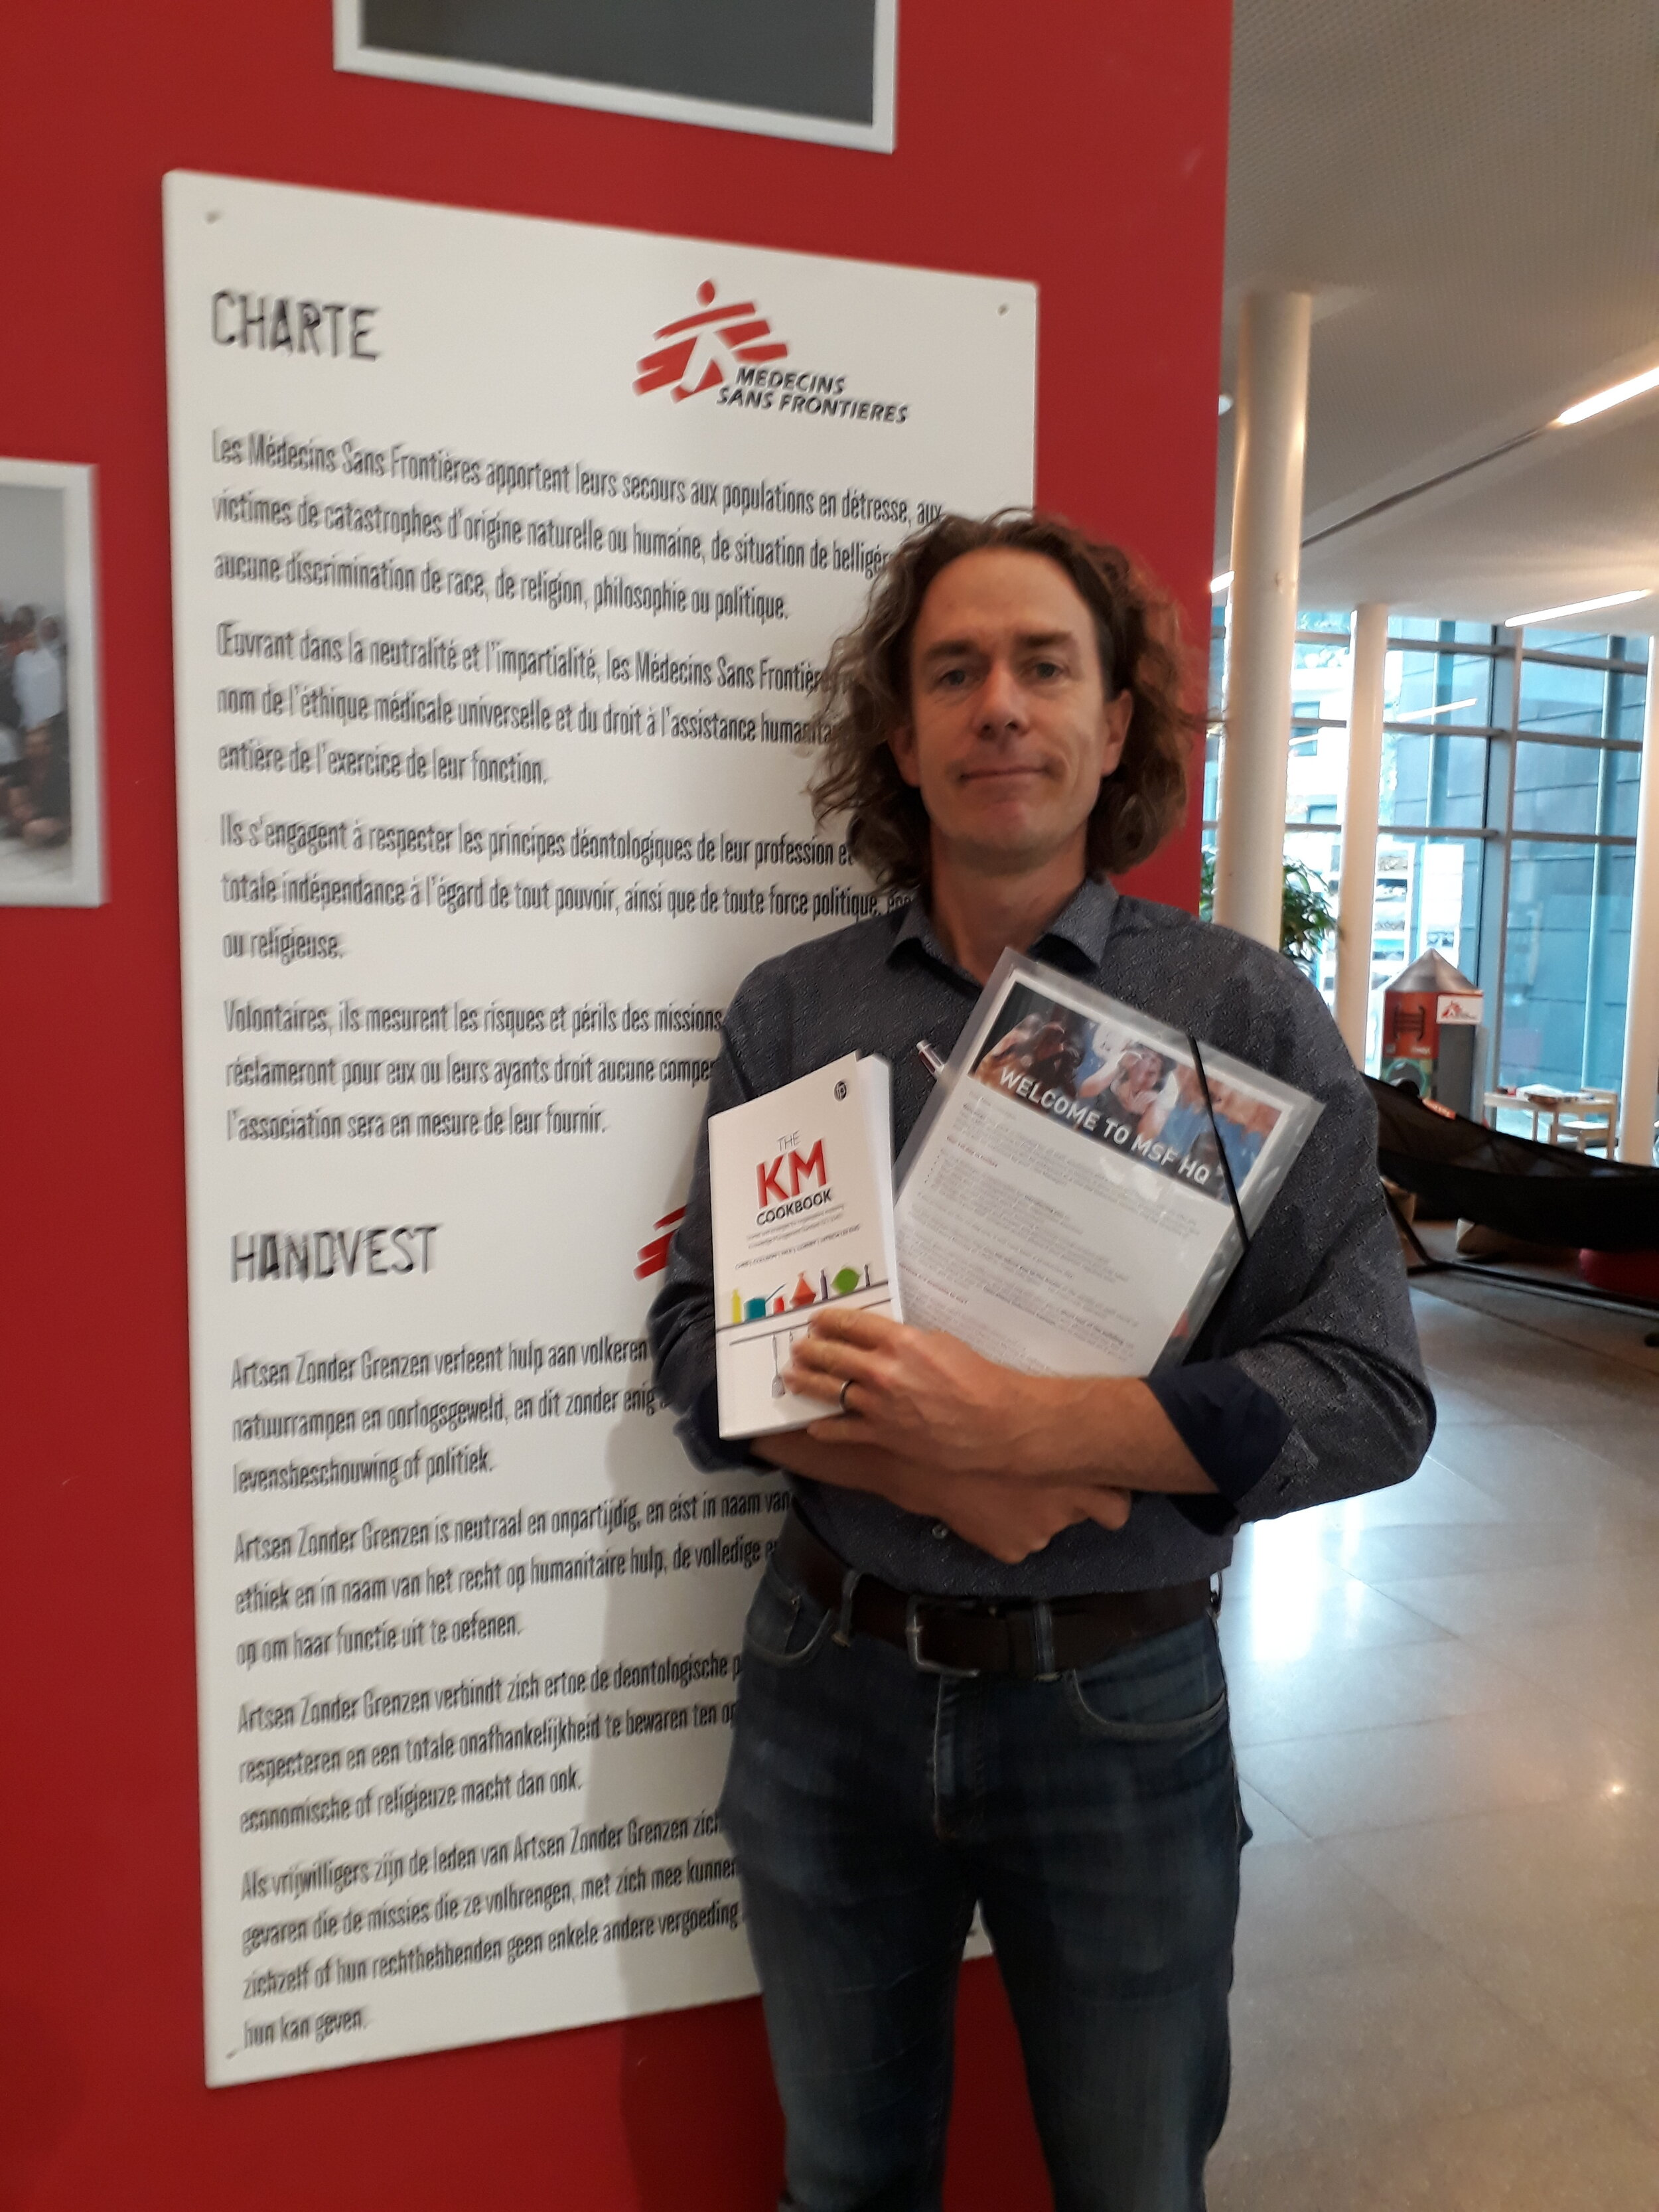 Here's Robin Vicent-Smith with the KM Cookbook - he's the featured chef at MSF!